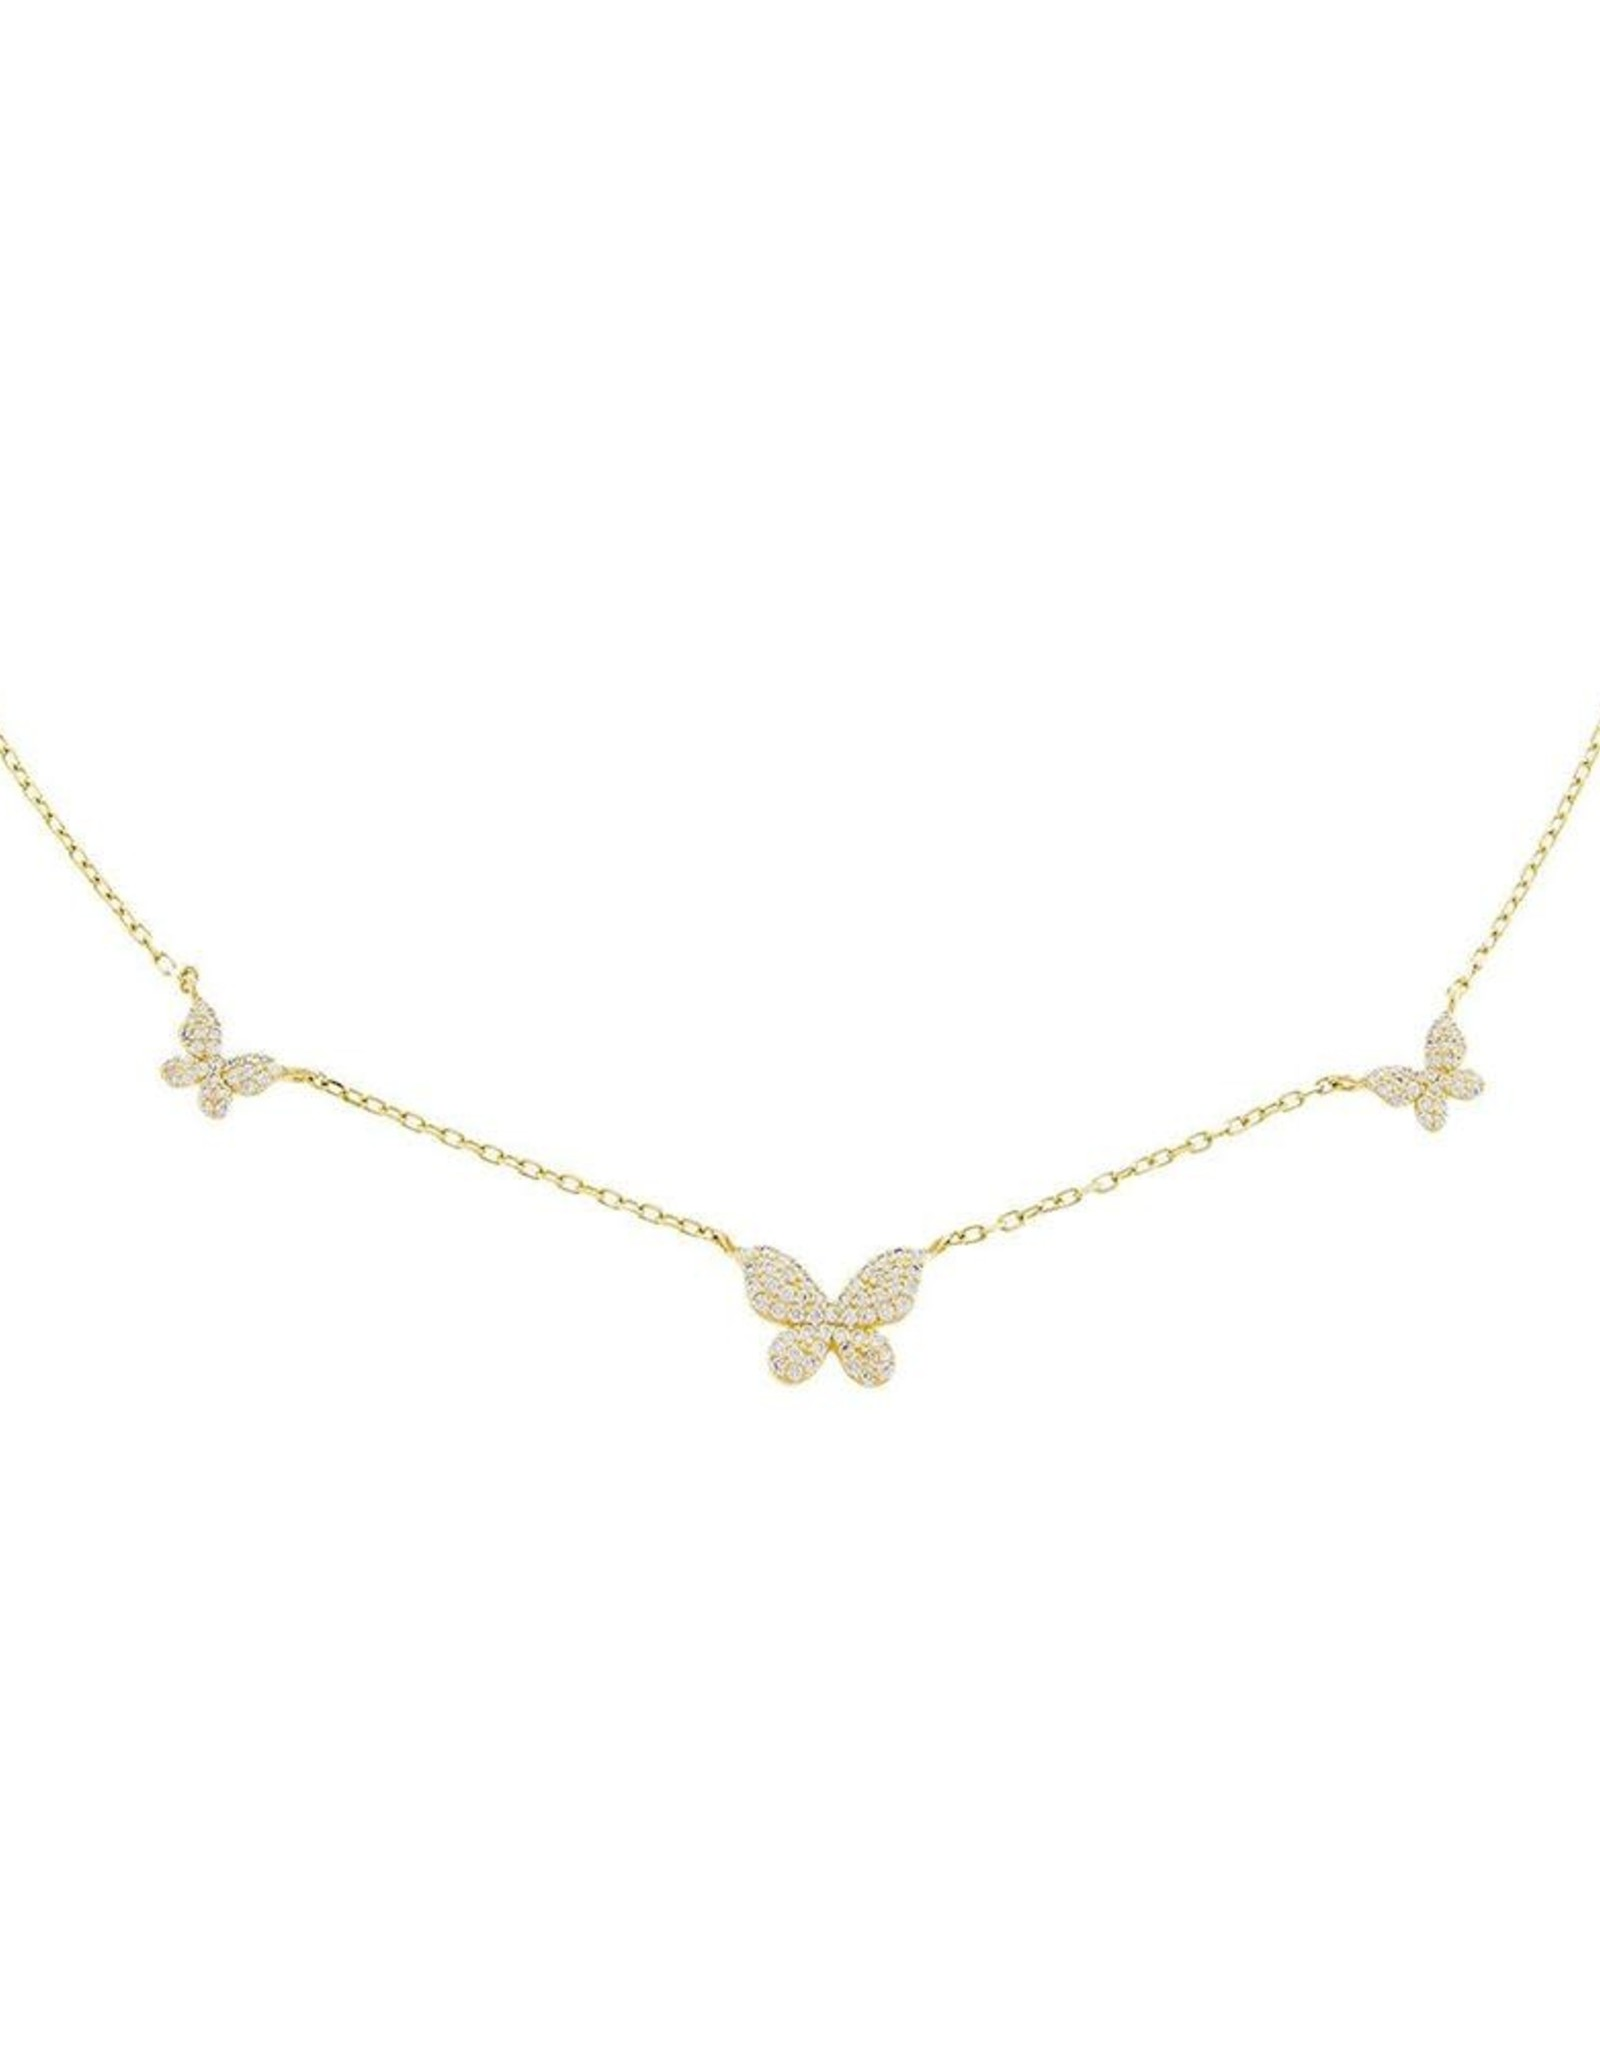 Adinas Pavé 5 Butterfly Necklace